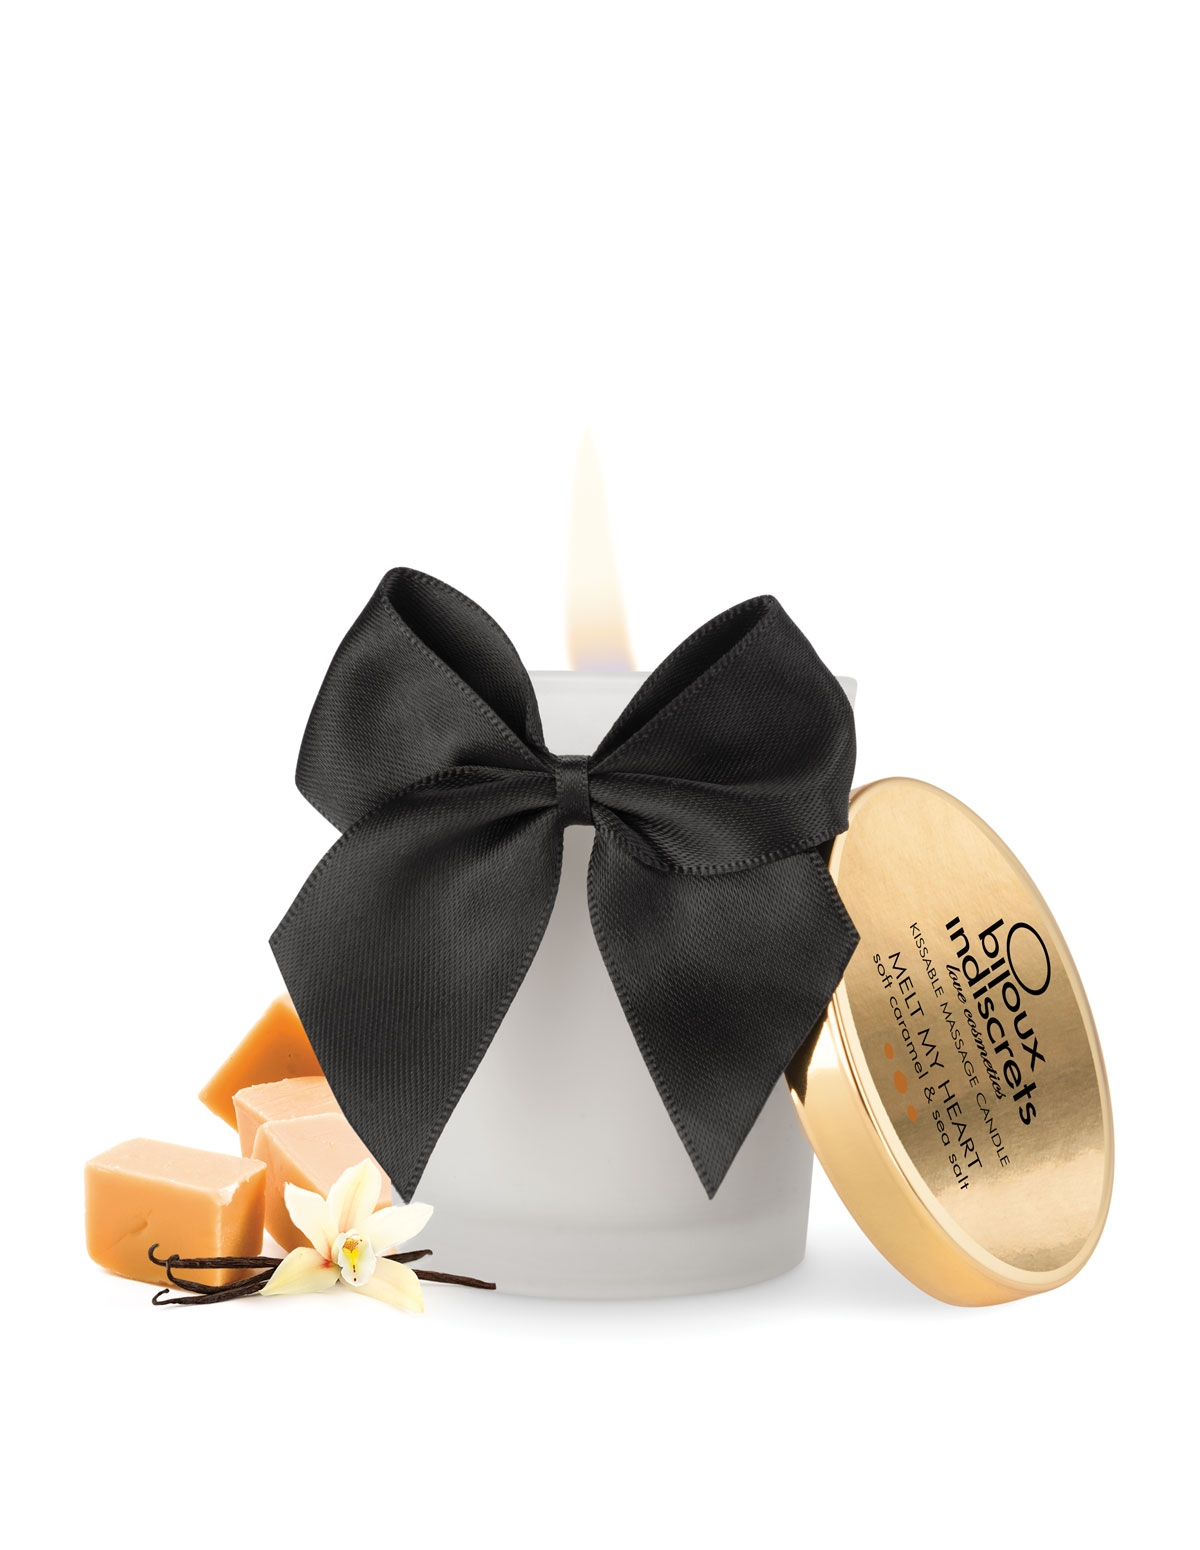 Melt My Heart Kissable Massage Candle - Caramel